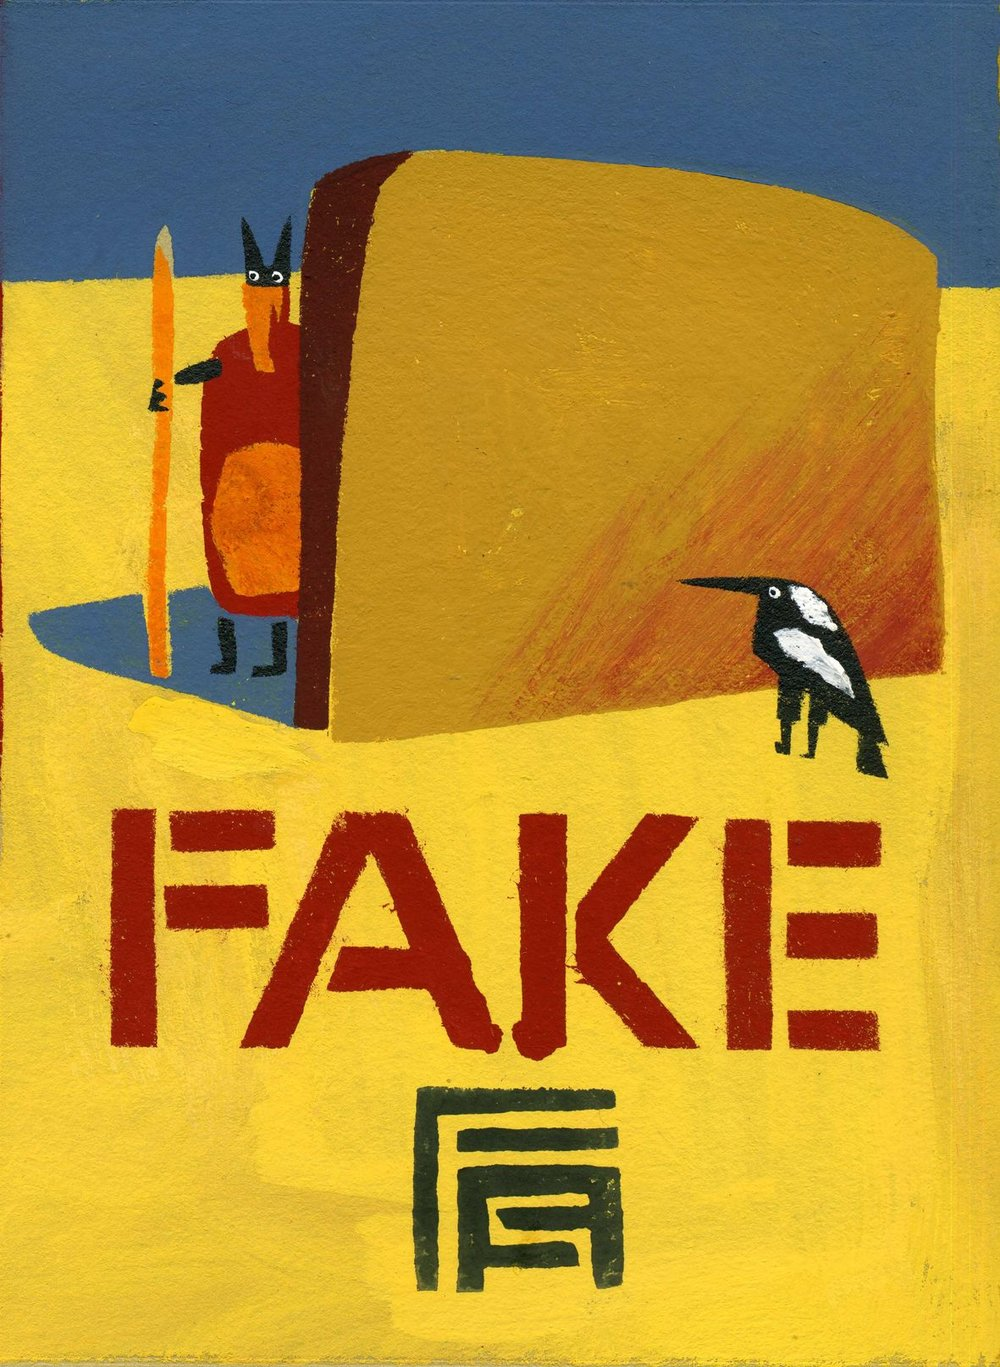 Fake (version 2) , Franki Sparke, stencil and rubber stamp print, 2012